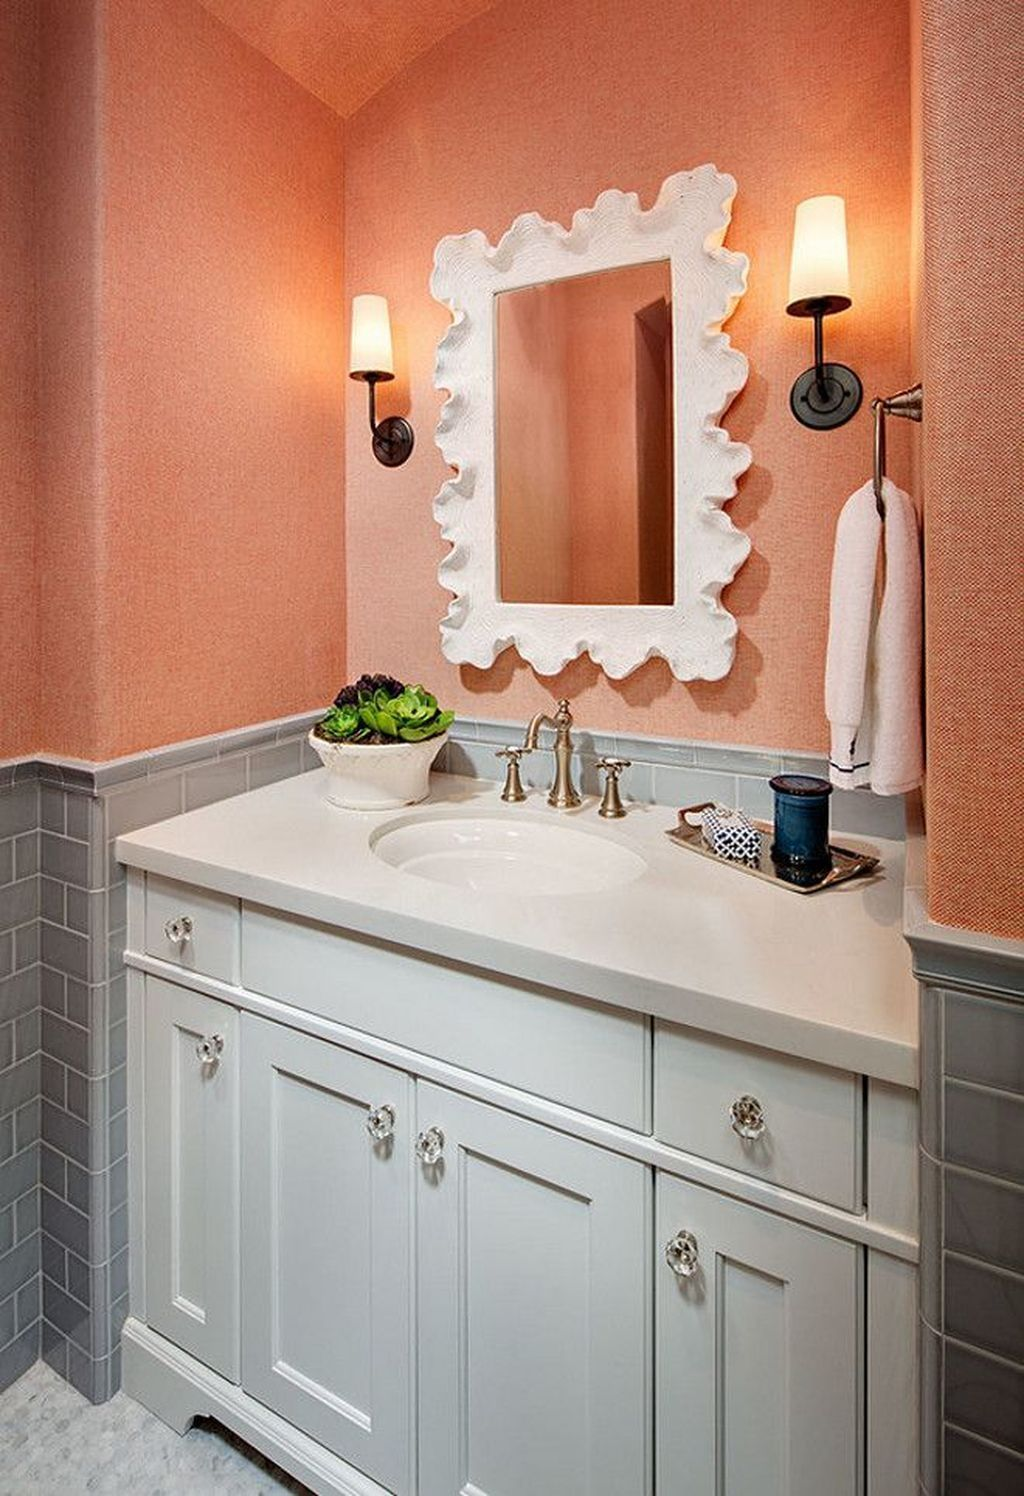 10 Salmon Colored Bathroom Some Of The Most Unique And Exciting